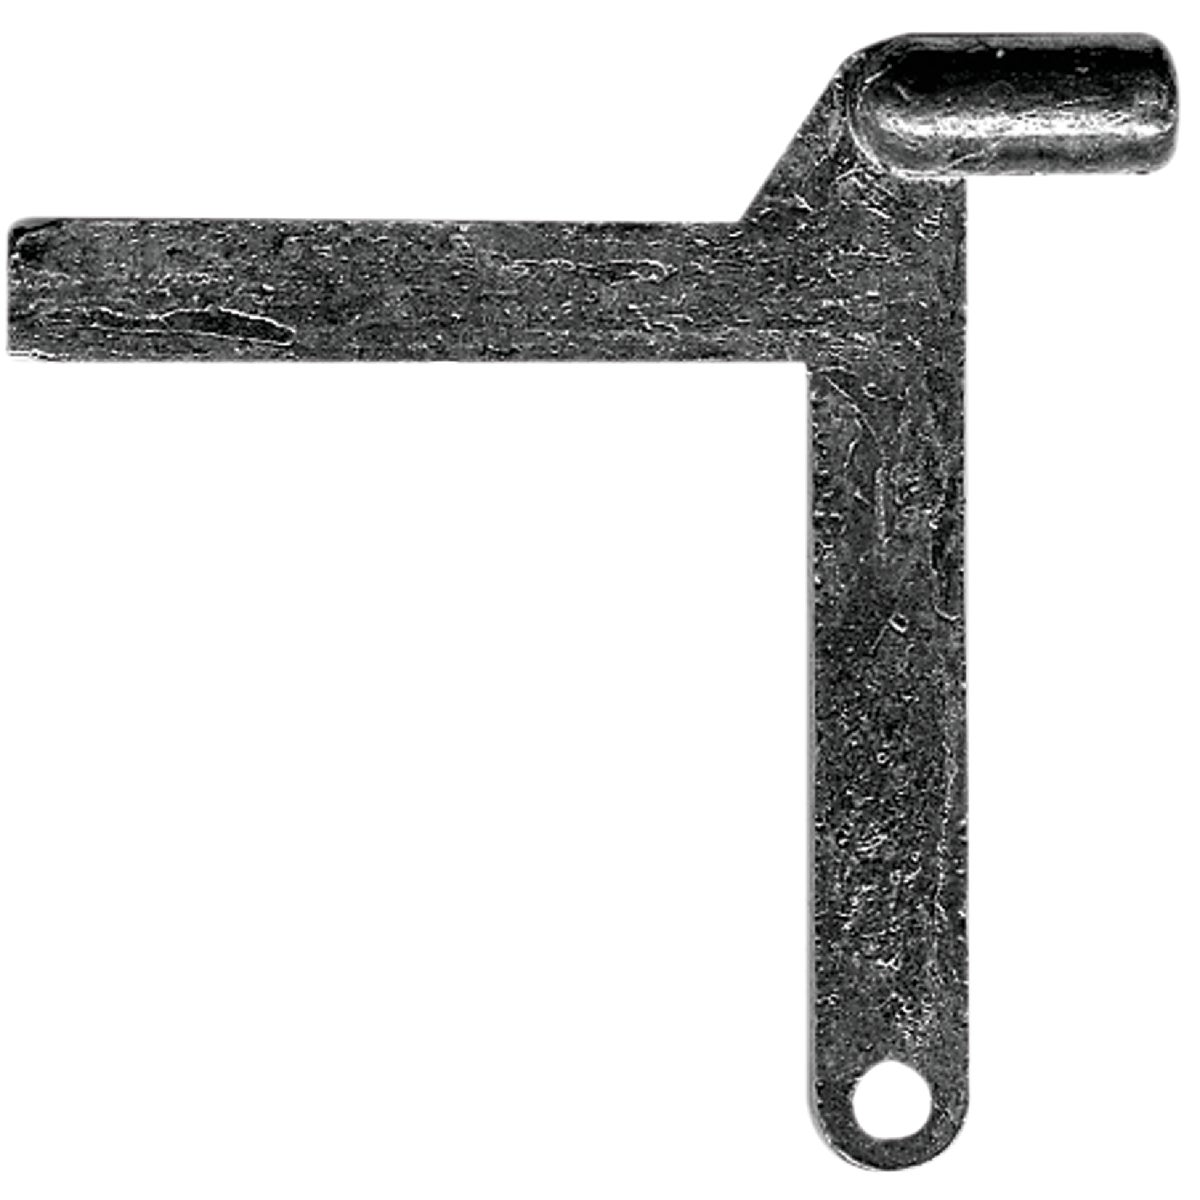 1/8X3/16 RH DCST TLT KEY - PL15272 by Prime Line Products